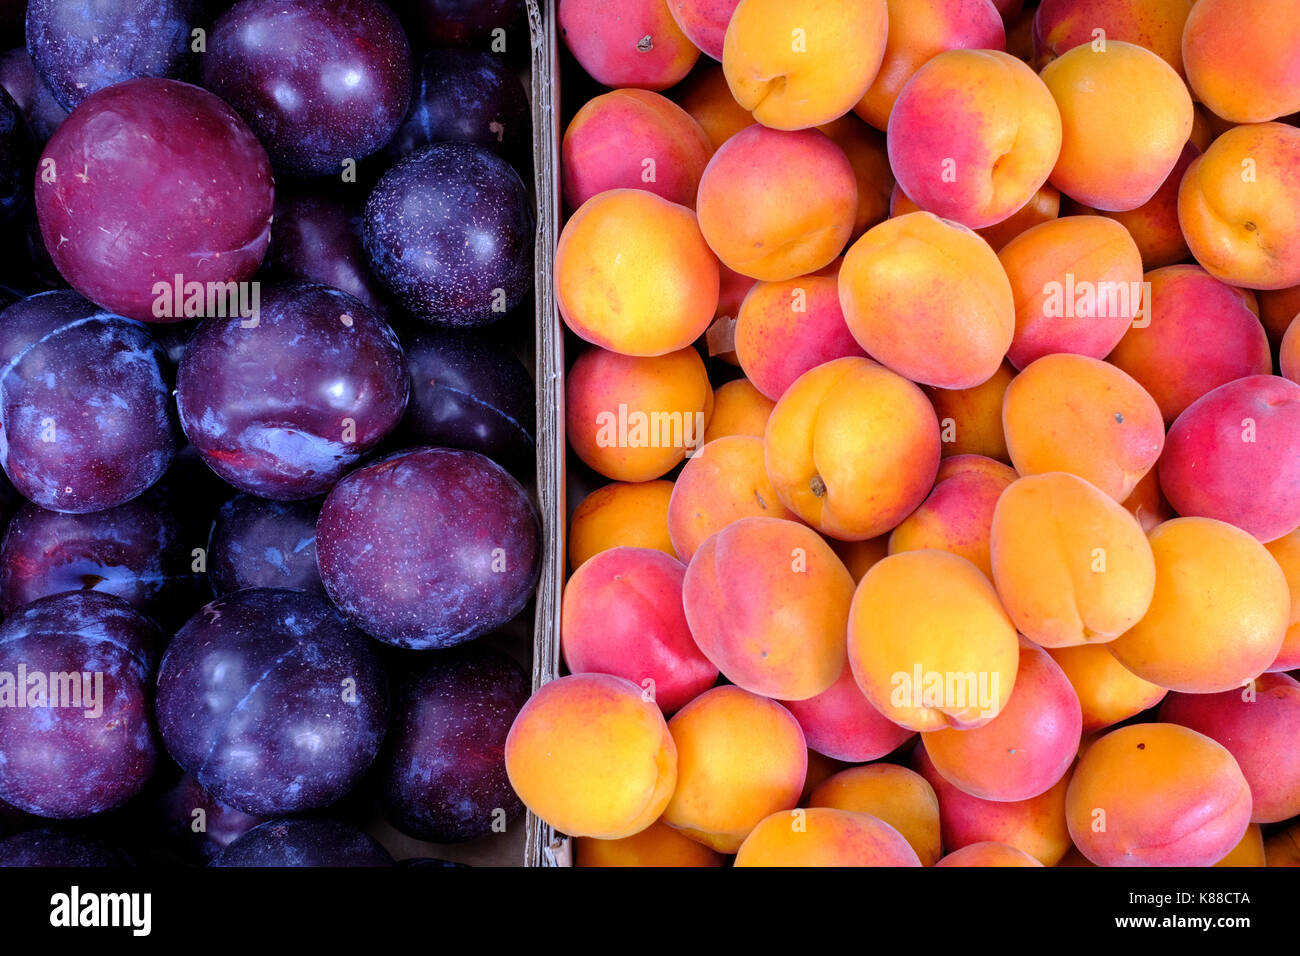 Fresh Fruit-Plums and apricots - Stock Image